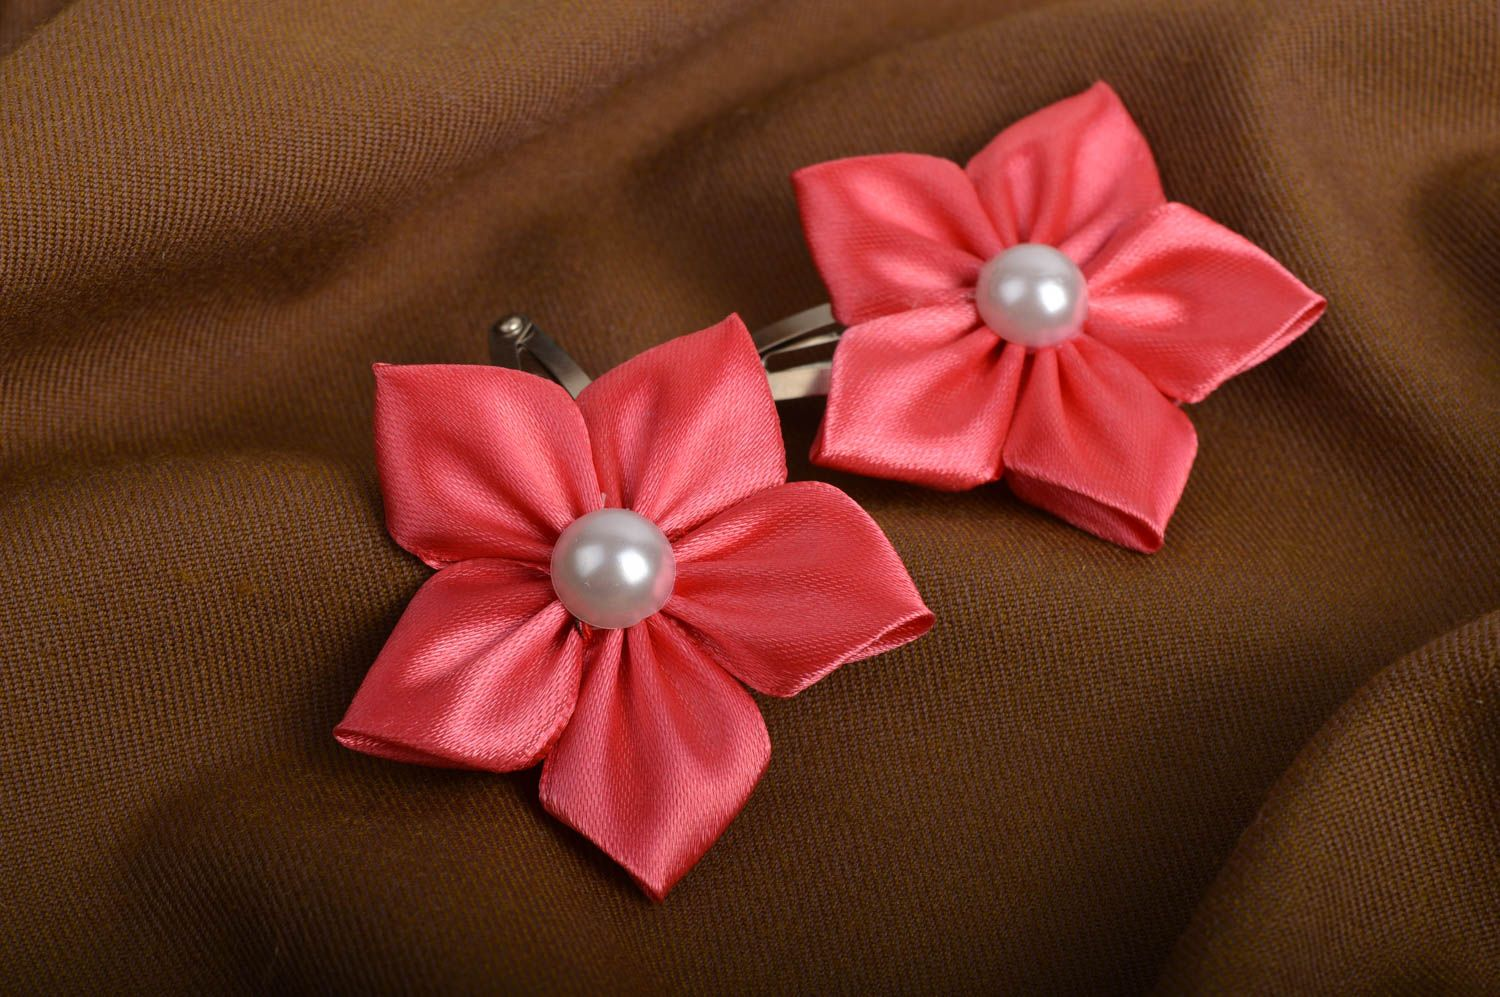 Beautiful handmade hair clip 2 pieces flowers in hair designer hair accessories photo 1